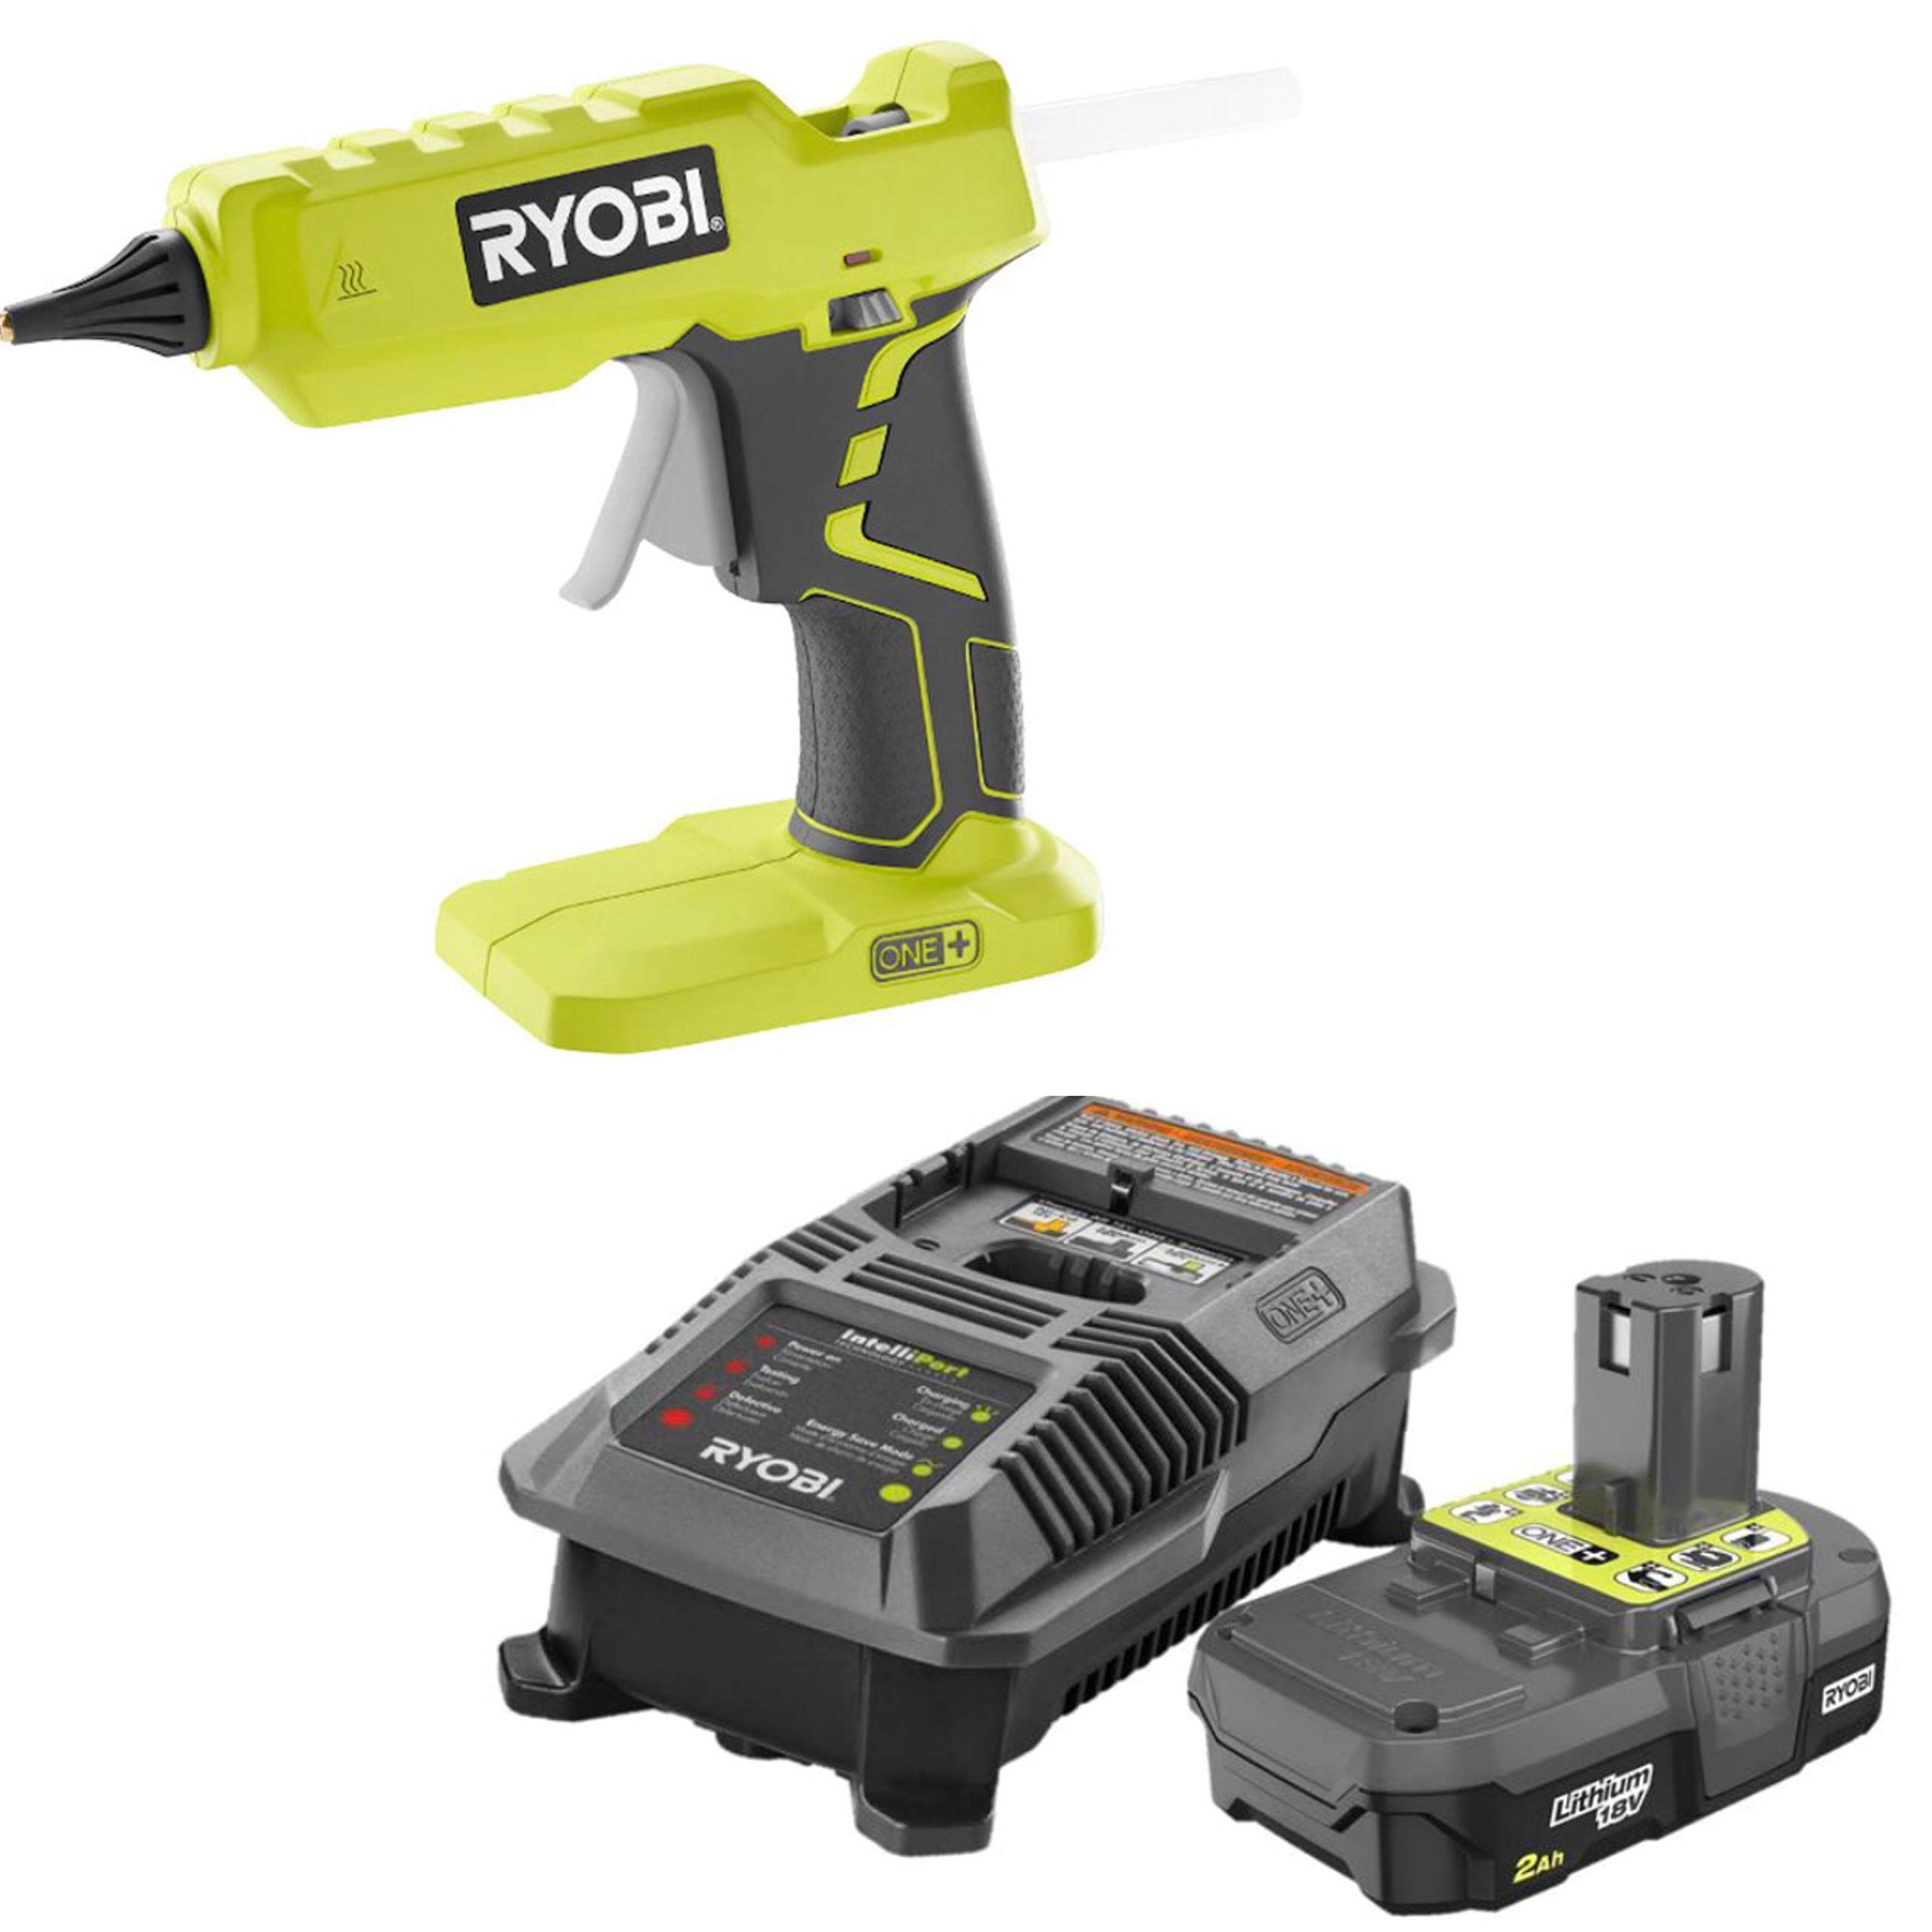 Ryobi Glue Gun P305 with Charger & Lithium-ion battery P163 18-Volt ONE+ 2.0 Ah battery and charger (Certified Refurbished) by Ryobi america corporation